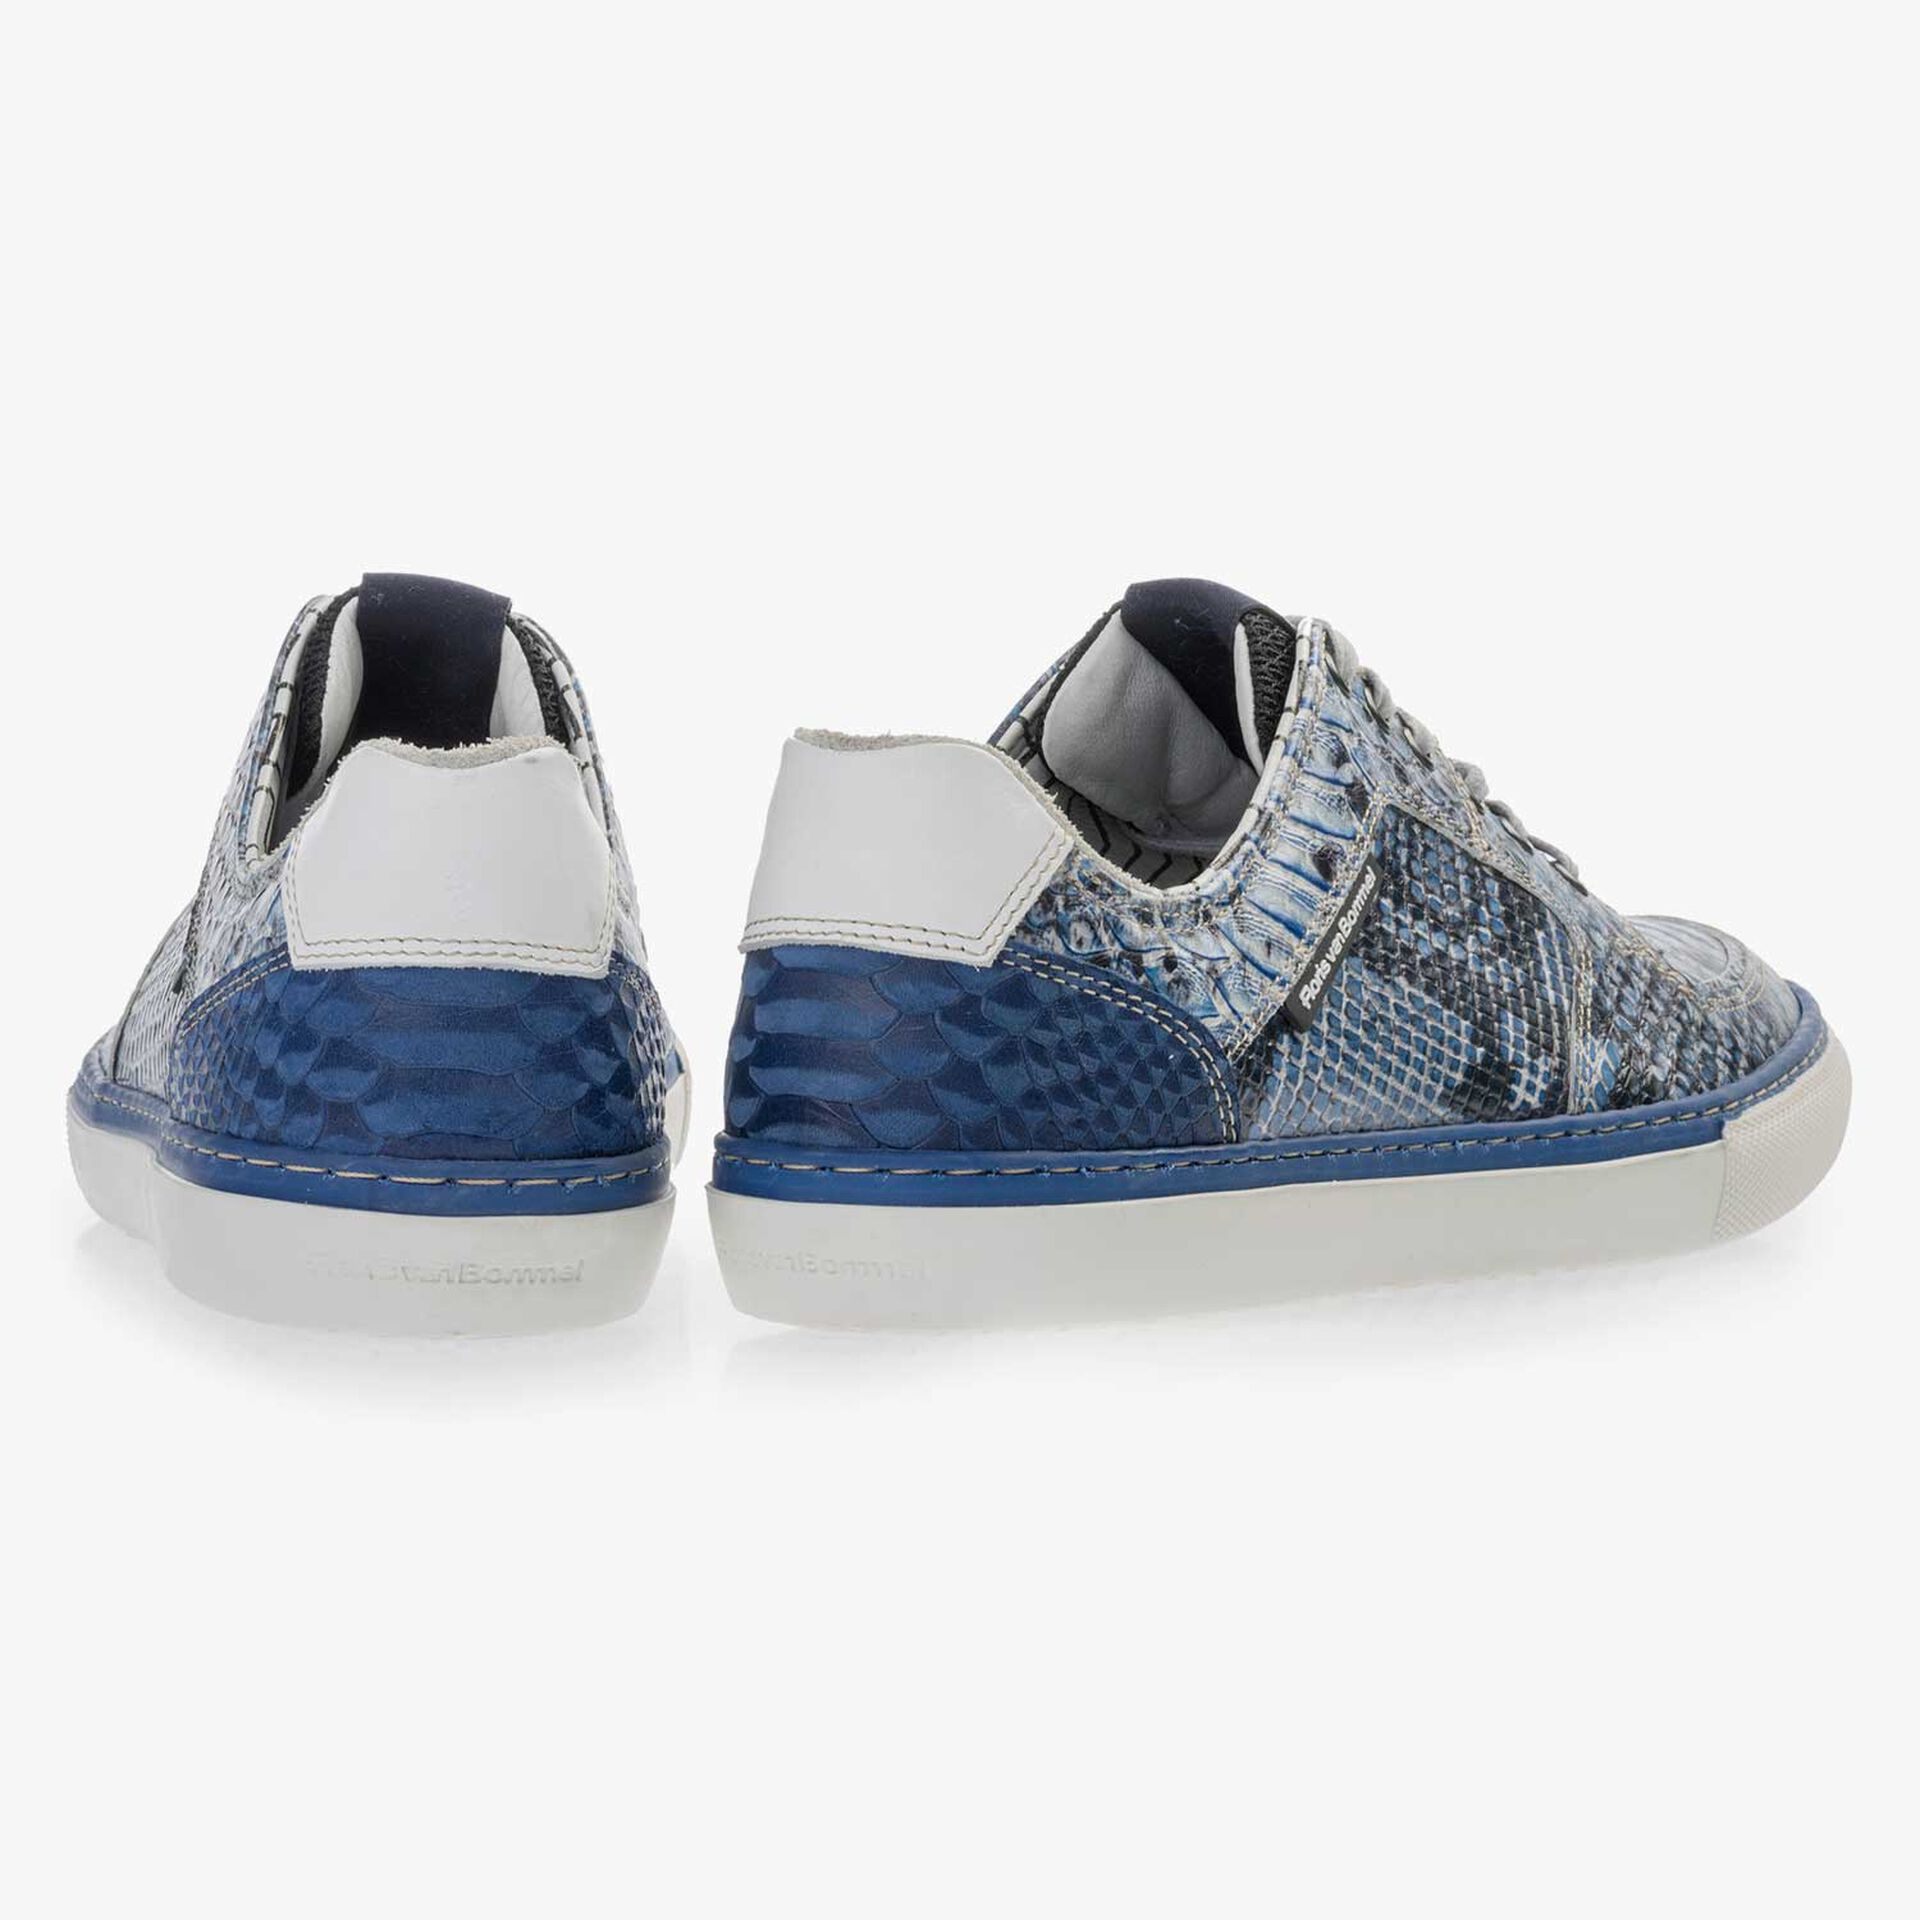 Blue leather lace shoe with a snake print